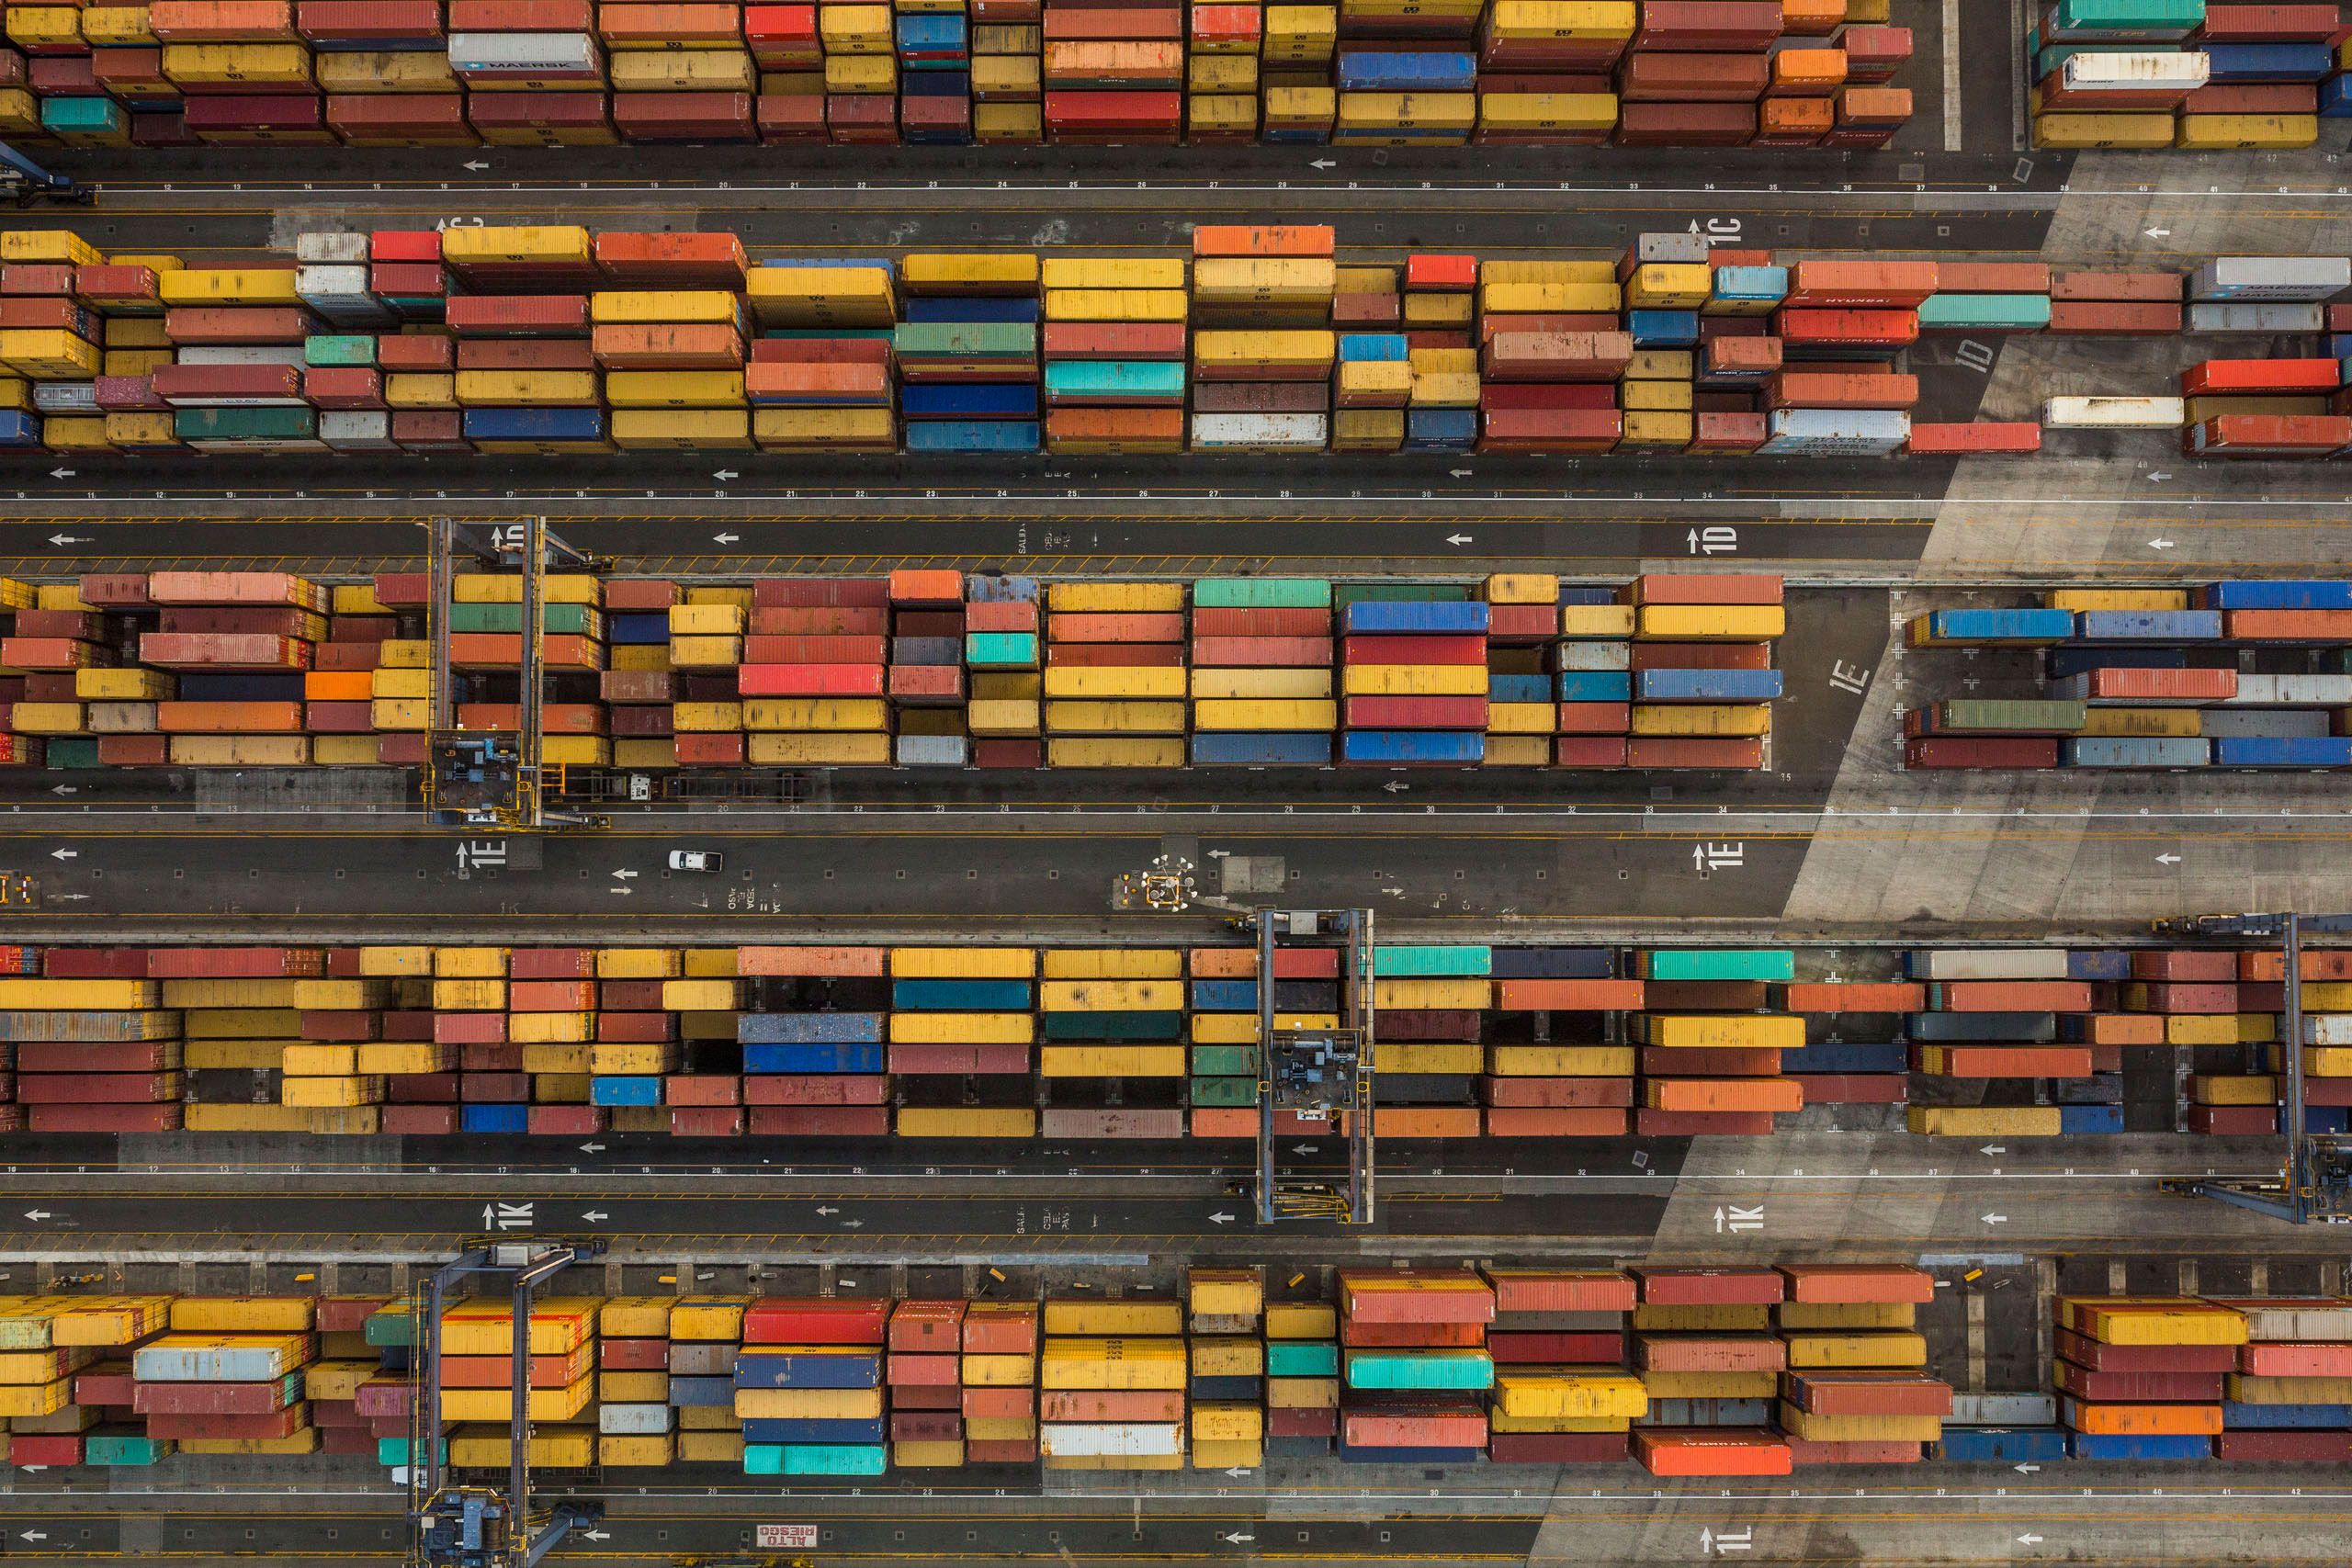 Container cargo yard on the Panama City side of the canal, where containers are transported by rail across the Isthmus of Panama, April, 22, 2015.